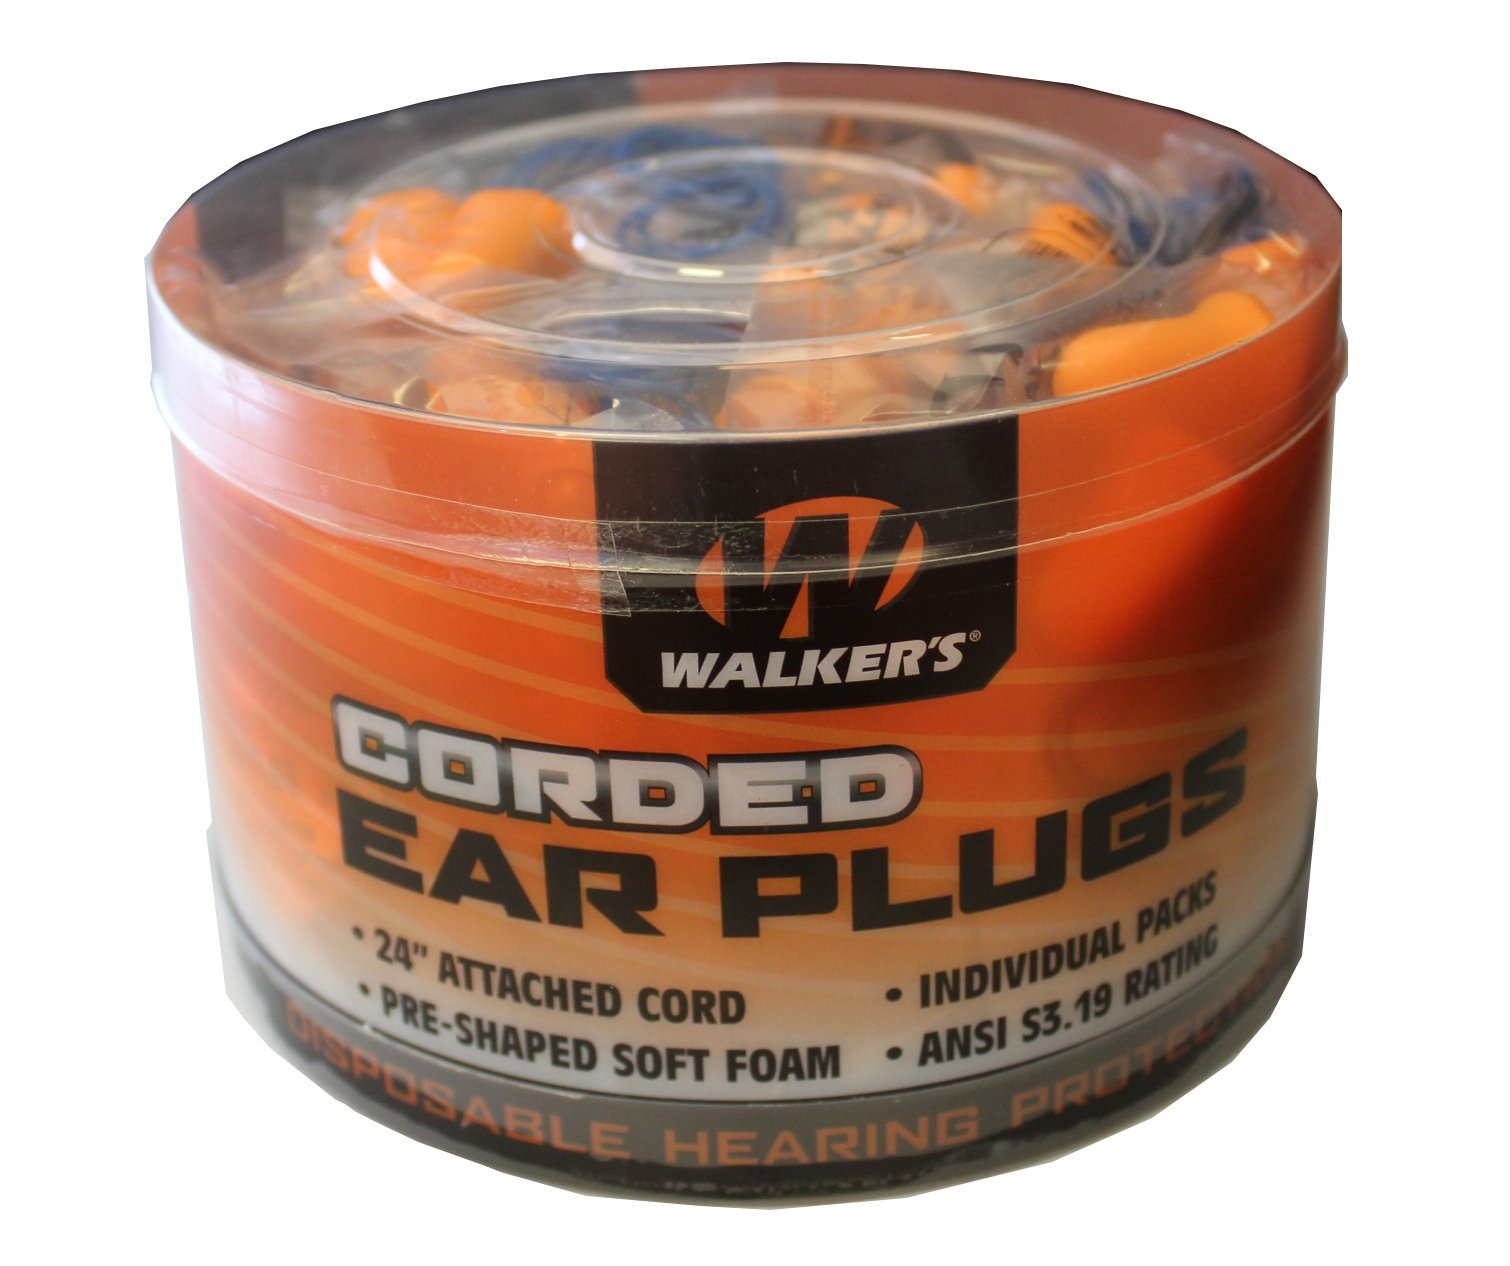 Walker's Corded Foam Ear Plugs Noise Reduction Rating 25Db/50 PK by WALKER'S